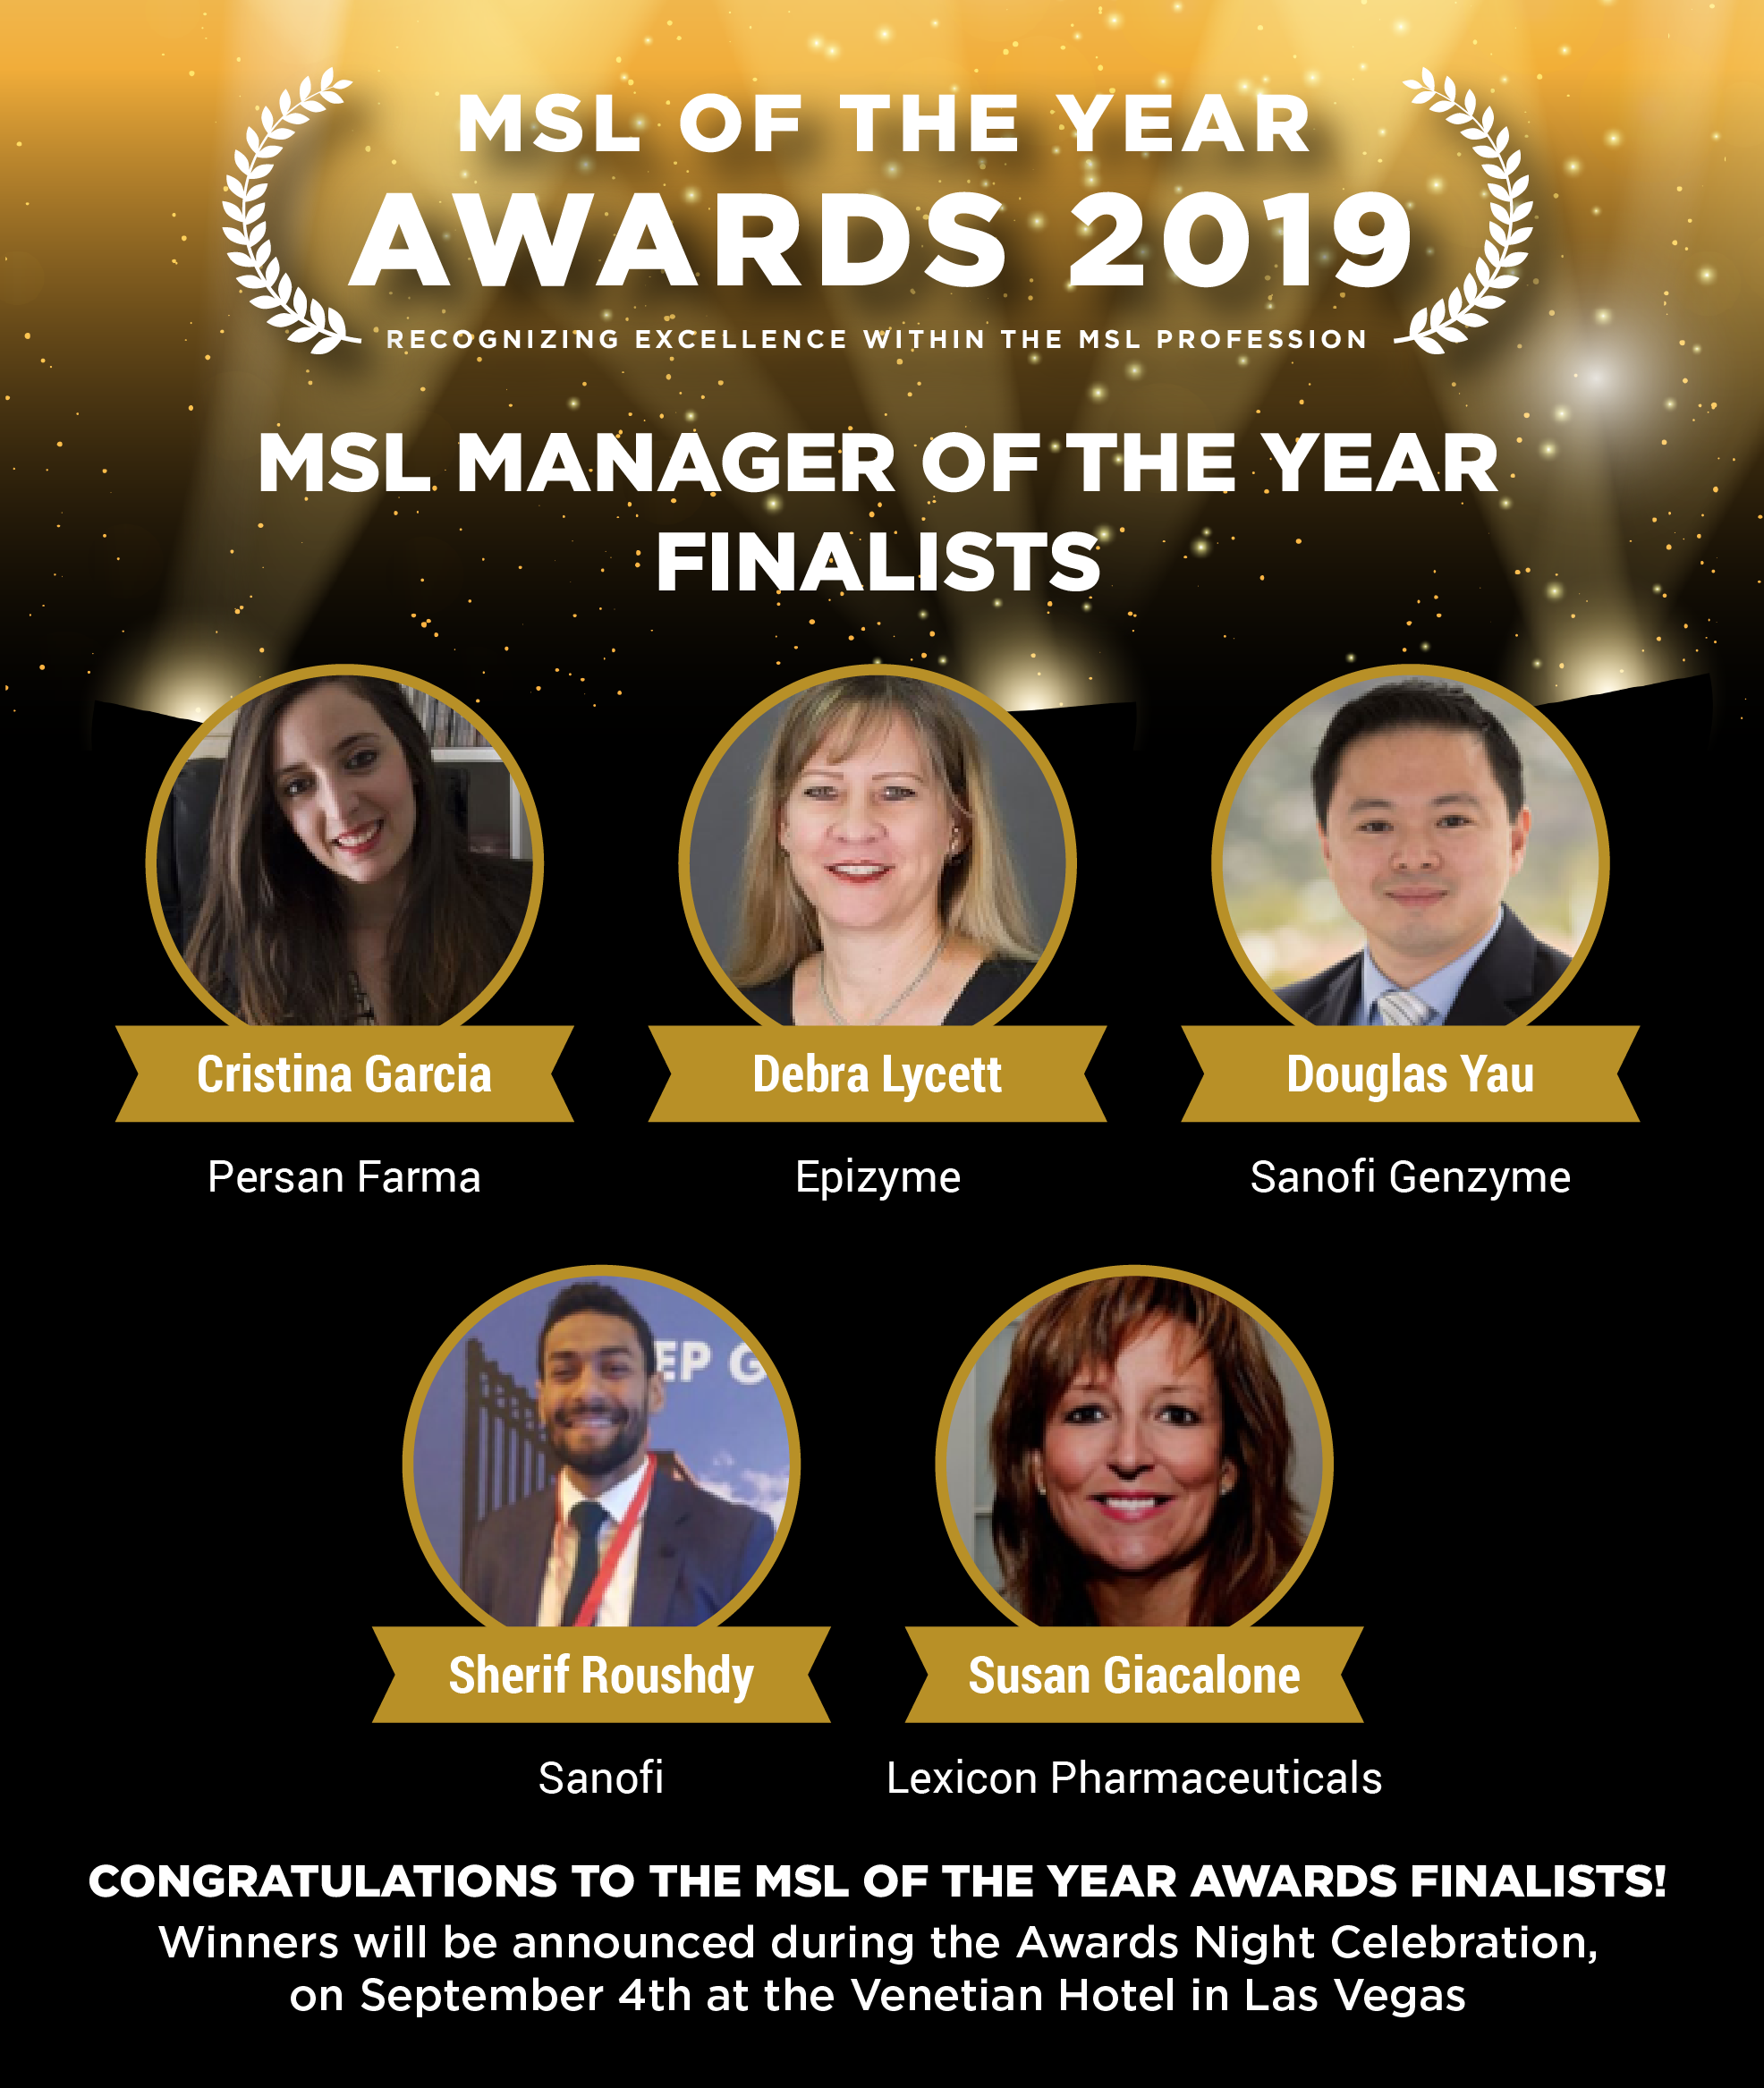 msl manager of the year awards 2019